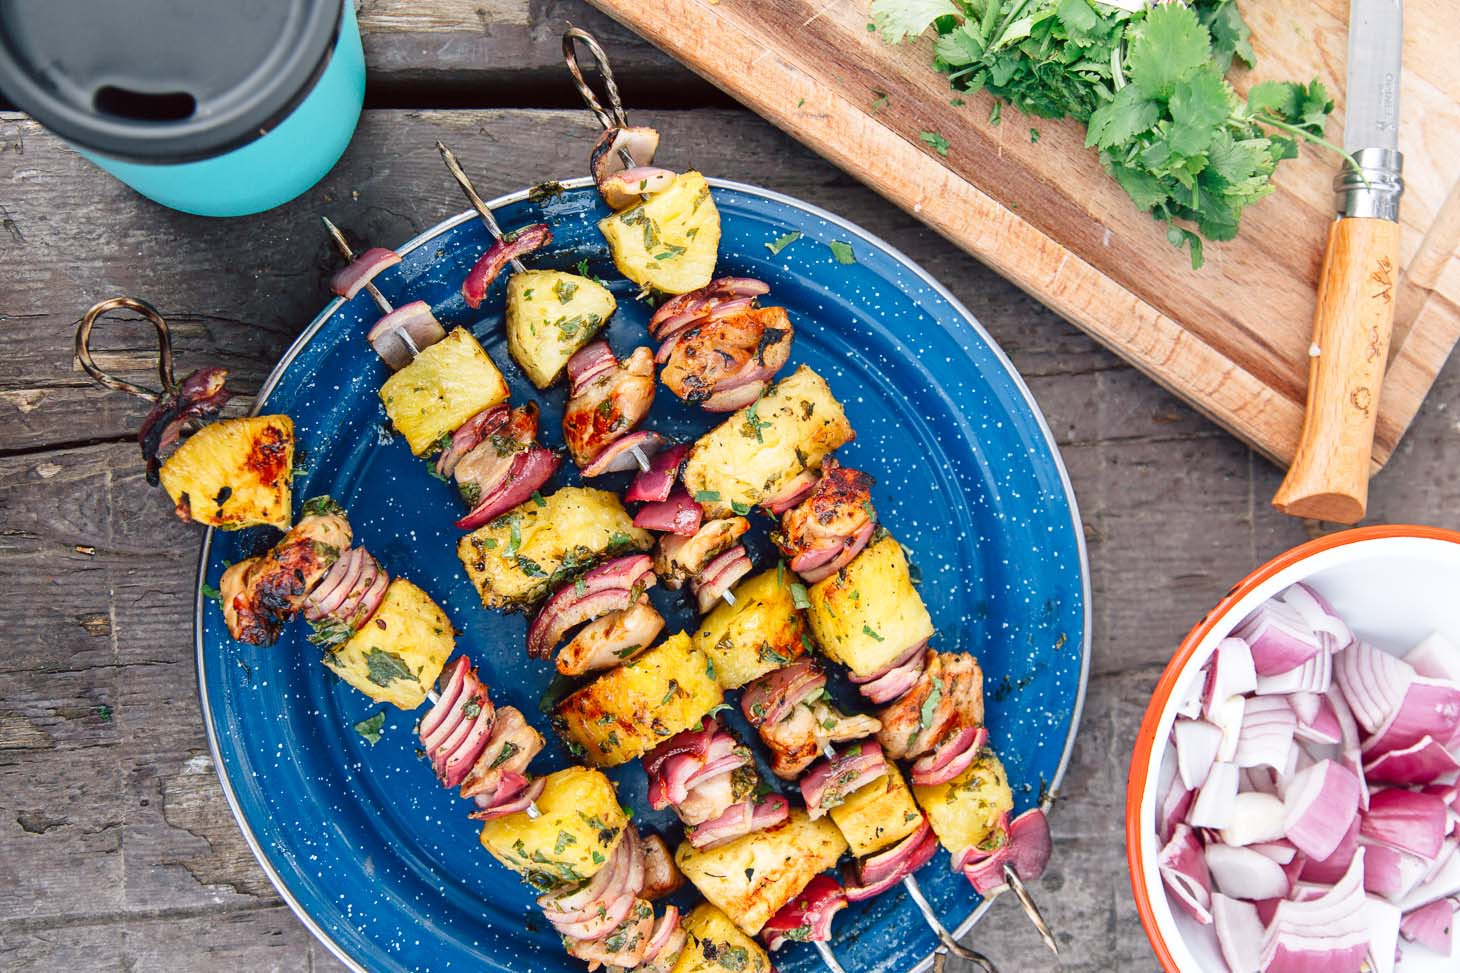 Pineapple chicken kabobs on a blue camping plate